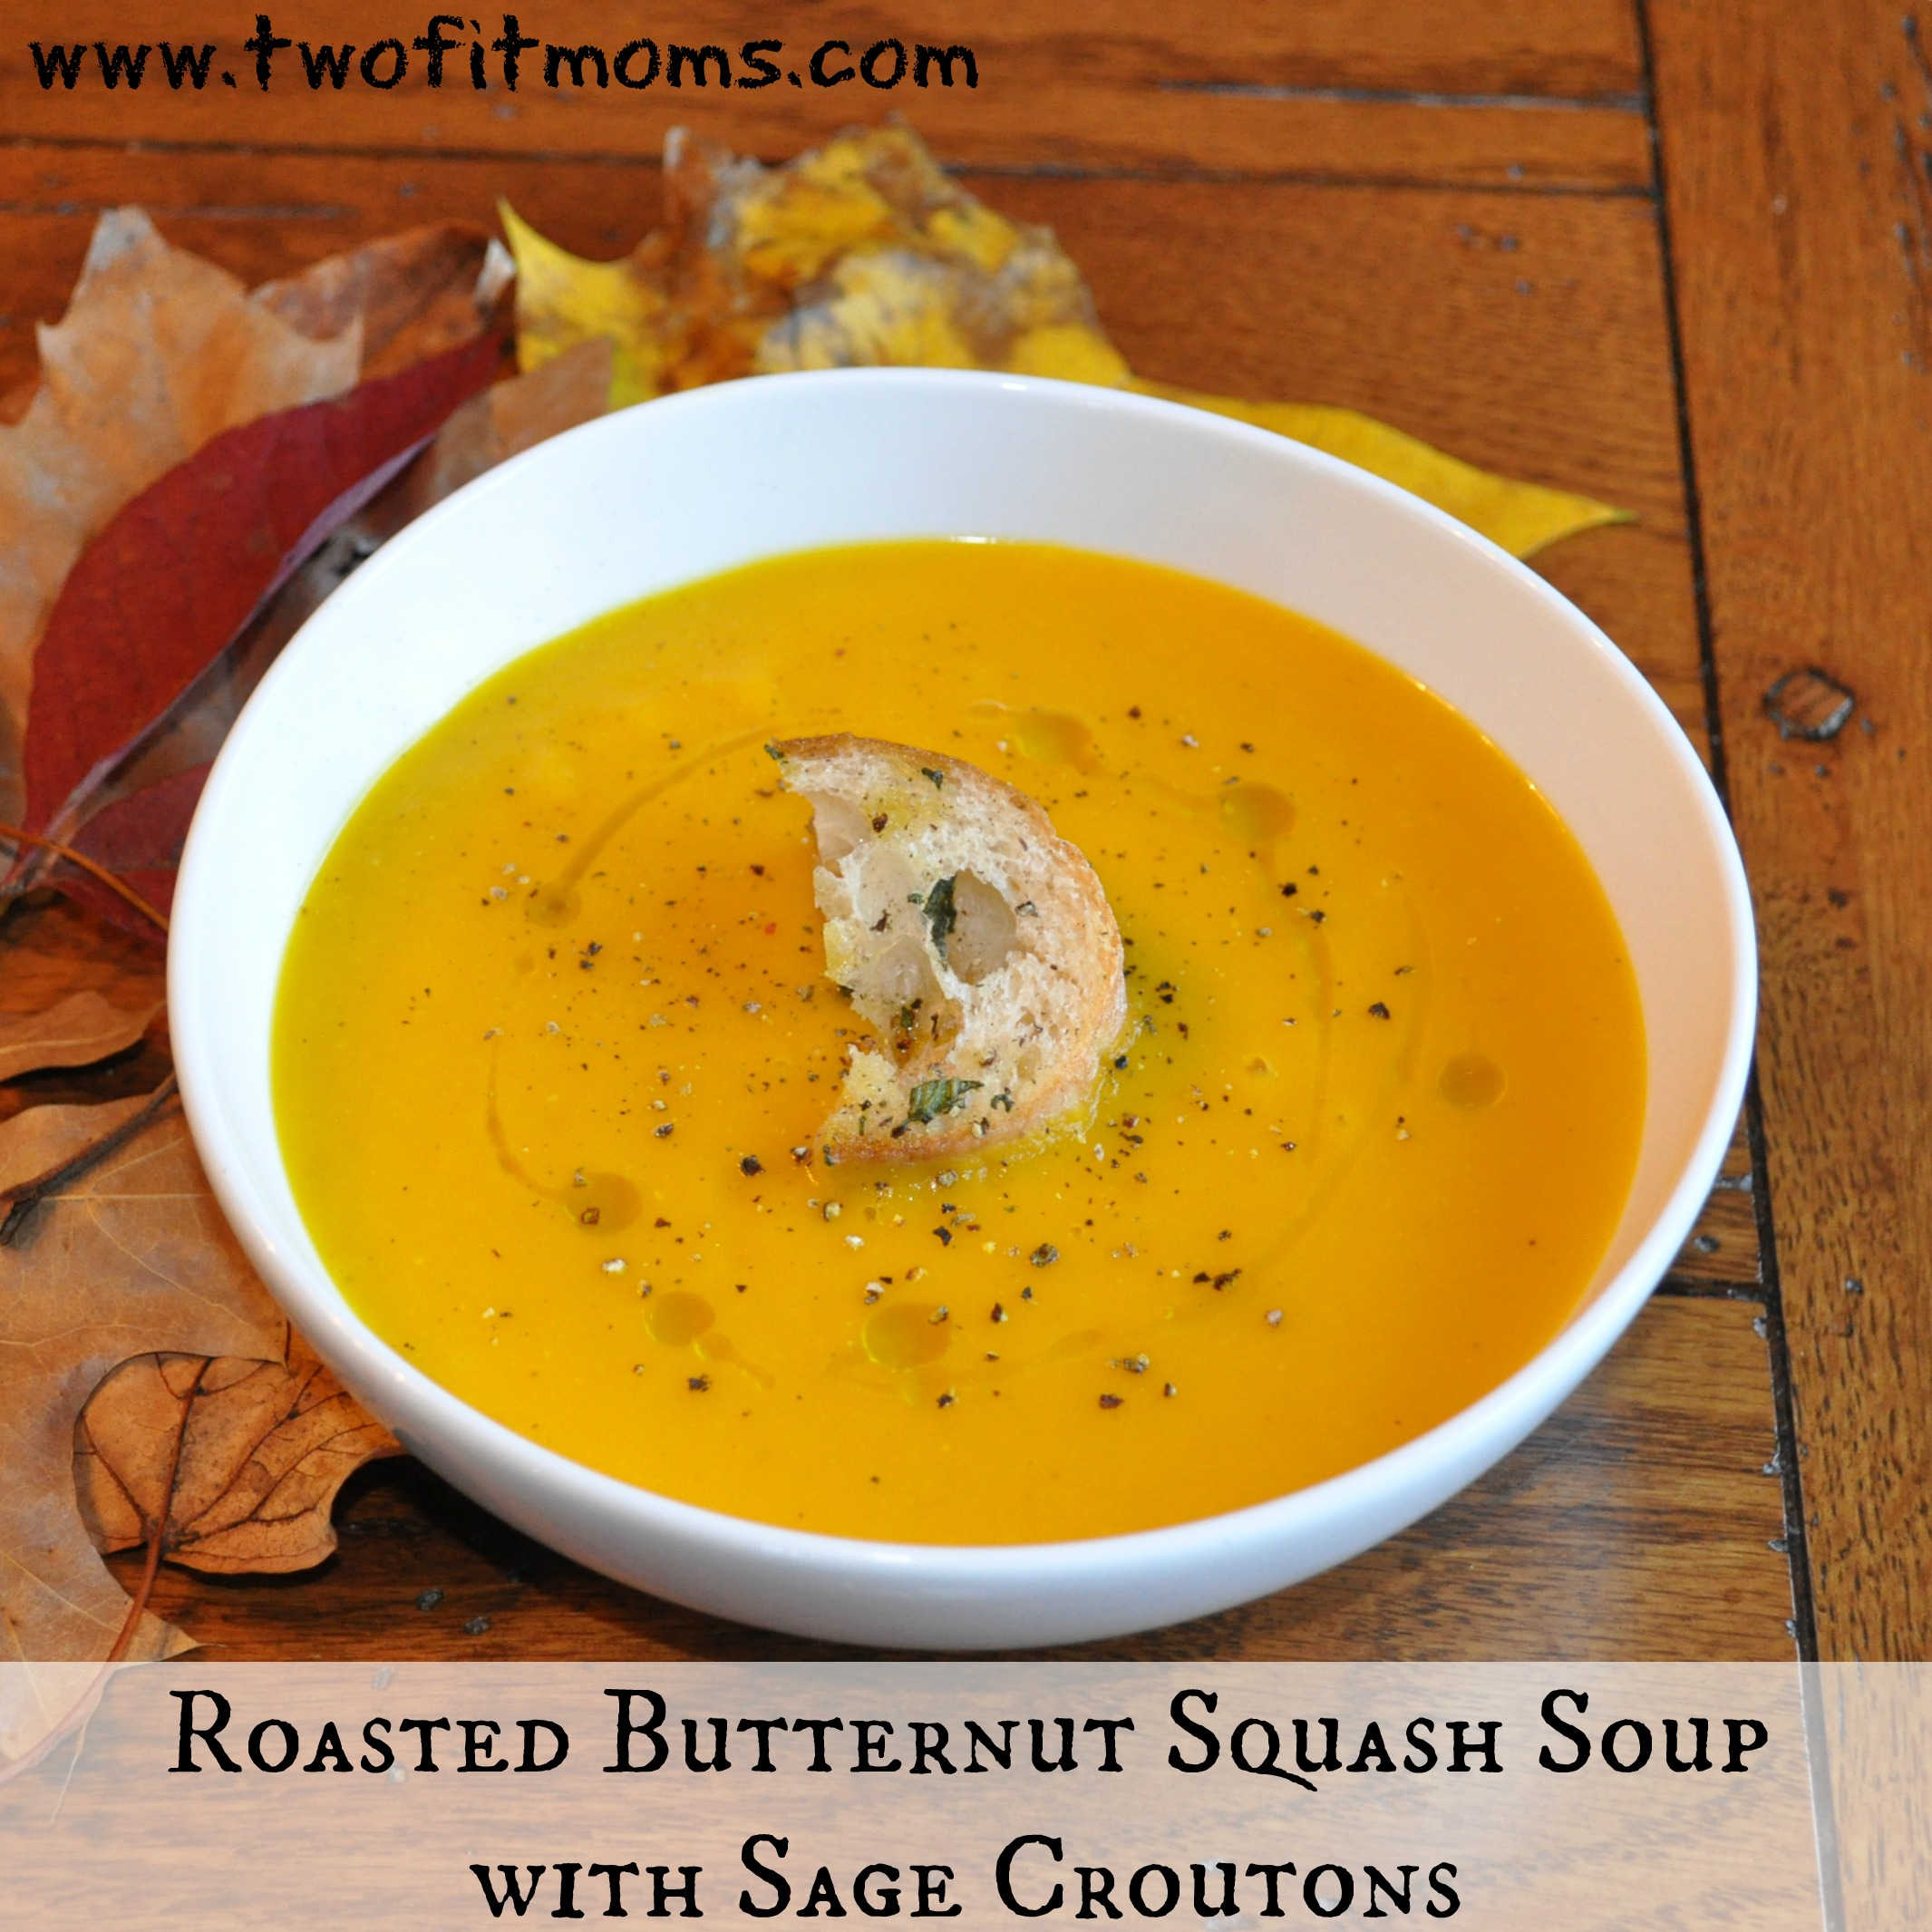 Two Fit Moms » Roasted Butternut Squash Soup with Sage Croutons